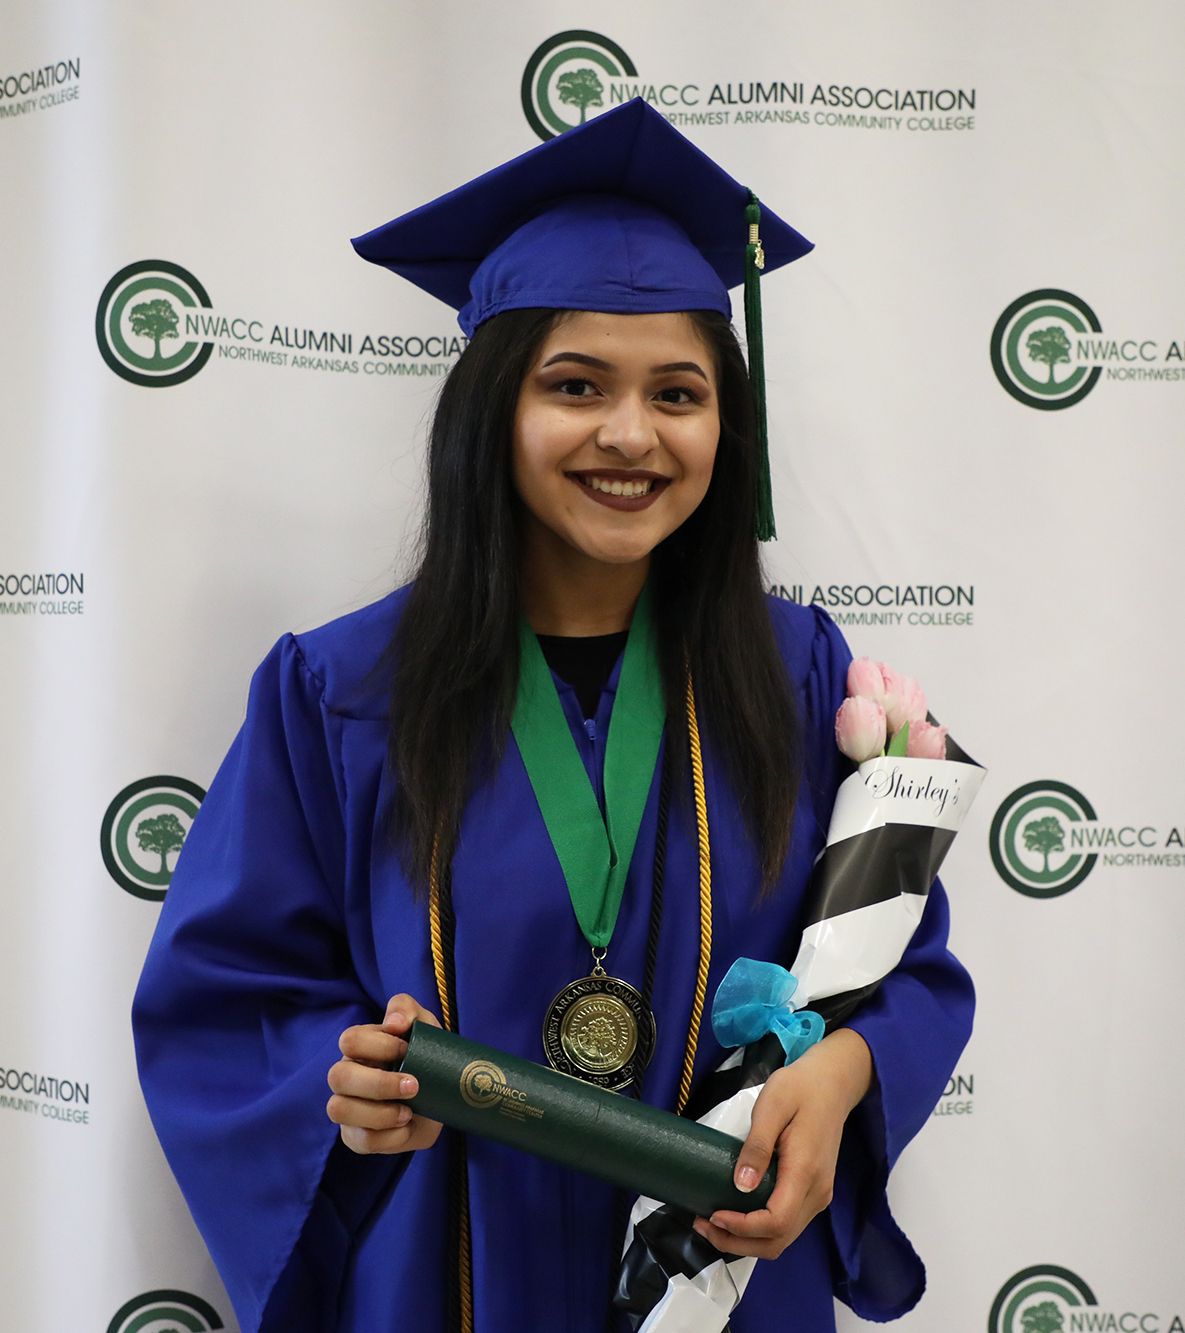 Female high school student in cap and gown